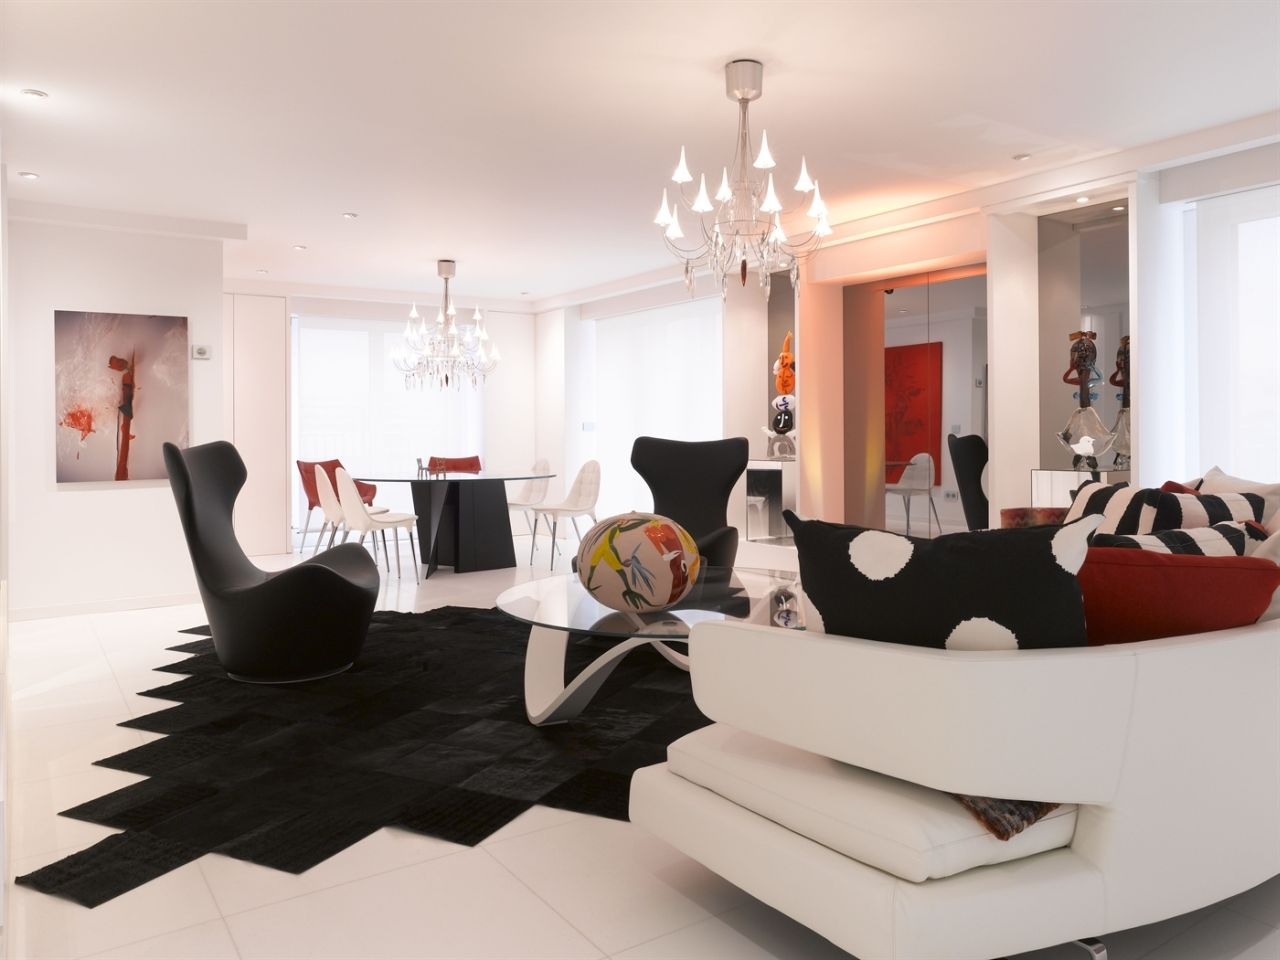 In the penthouse in Paris bold colors and strong shapes